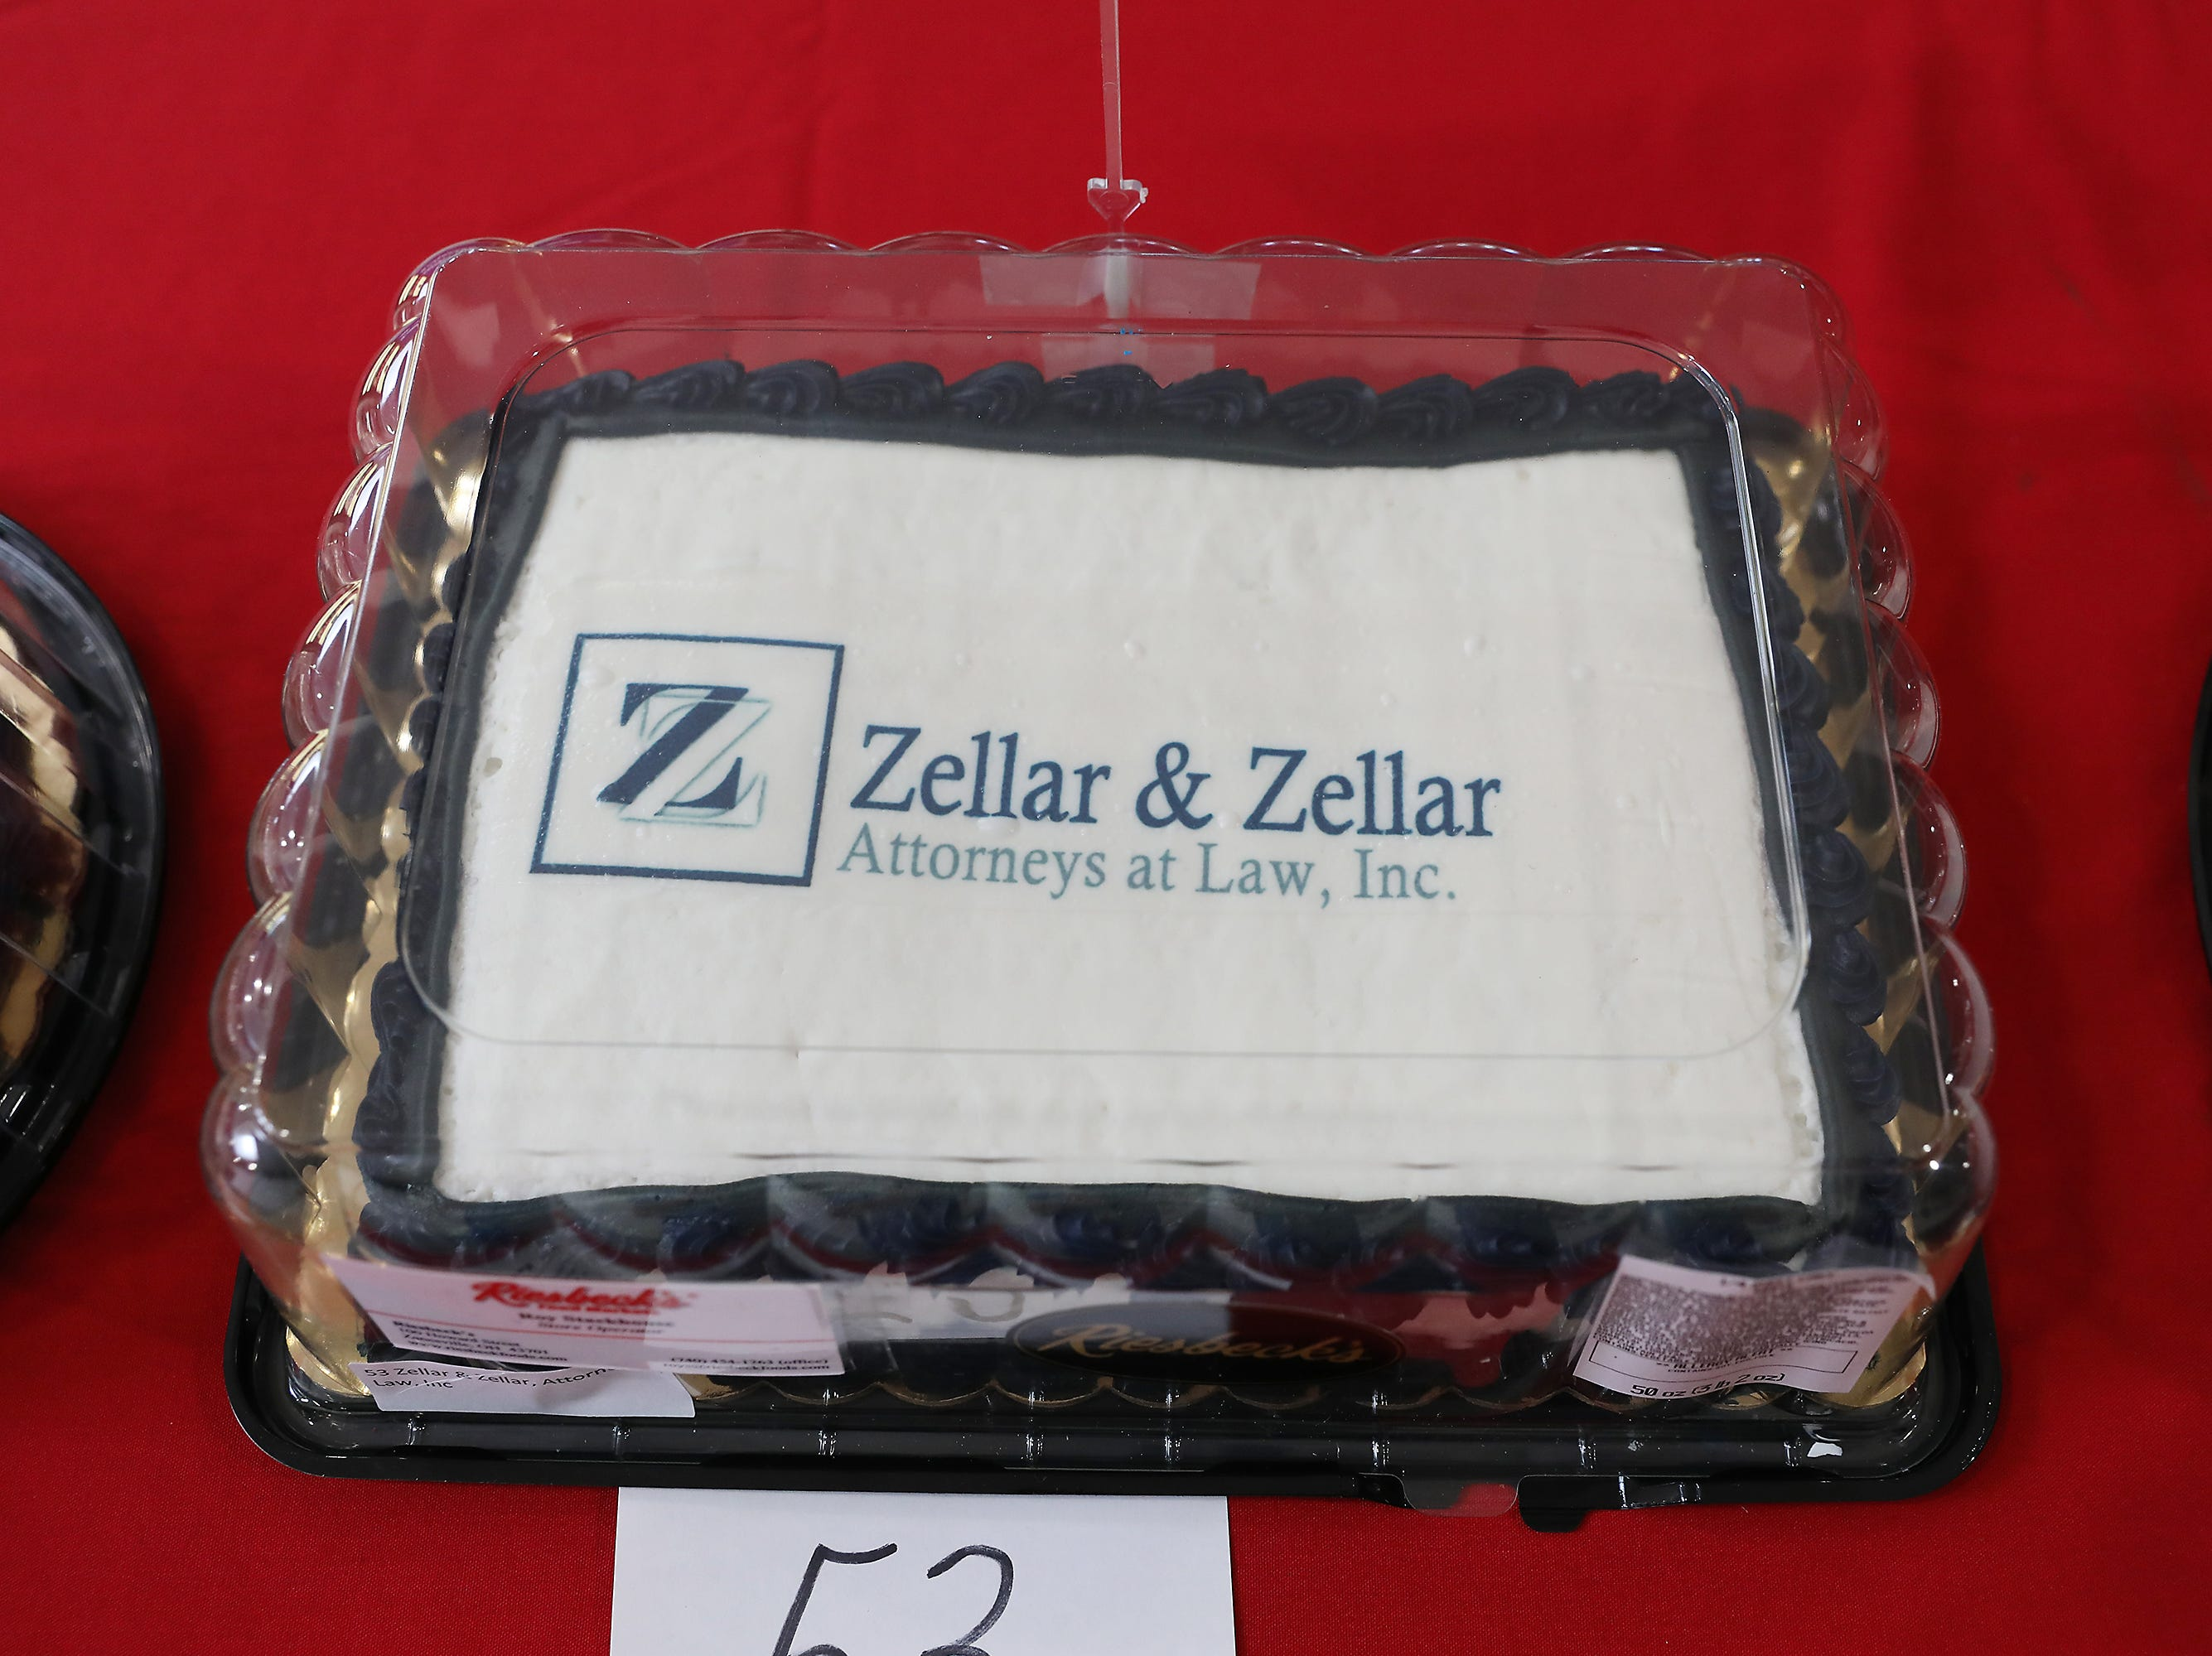 10:30 A.M. Thursday cake 53 Zellar & Zellar, Attorneys at Law - family games, snacks, wealth planning session, discount of estate planning; $1,000